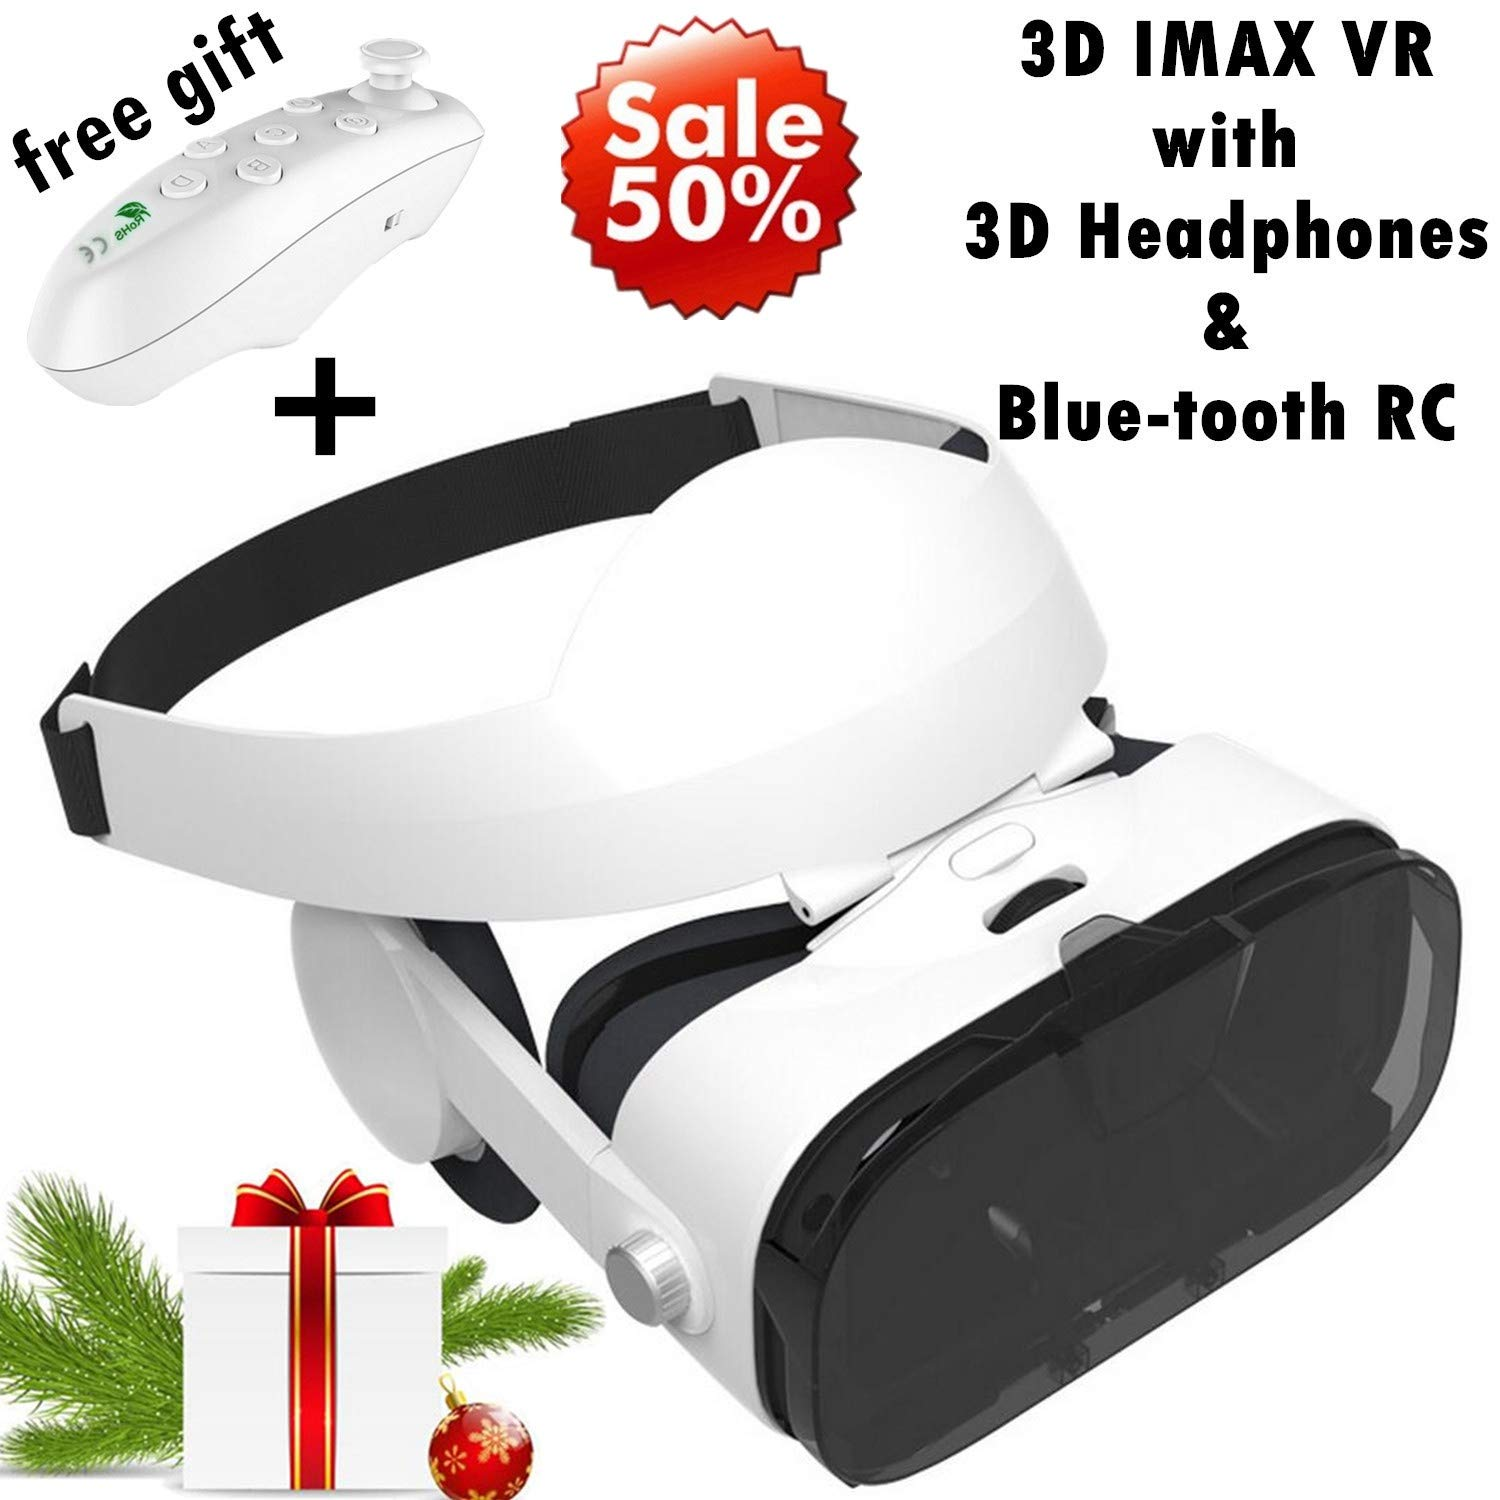 3d Vr Headset Virtual Reality Goggles W Over Ears Hifi Headphones For Iphone 11 Pro Xs Max Xr X 8 7 6s Plus Samsung Galaxy Note 10 9 8 5 4 3 S10